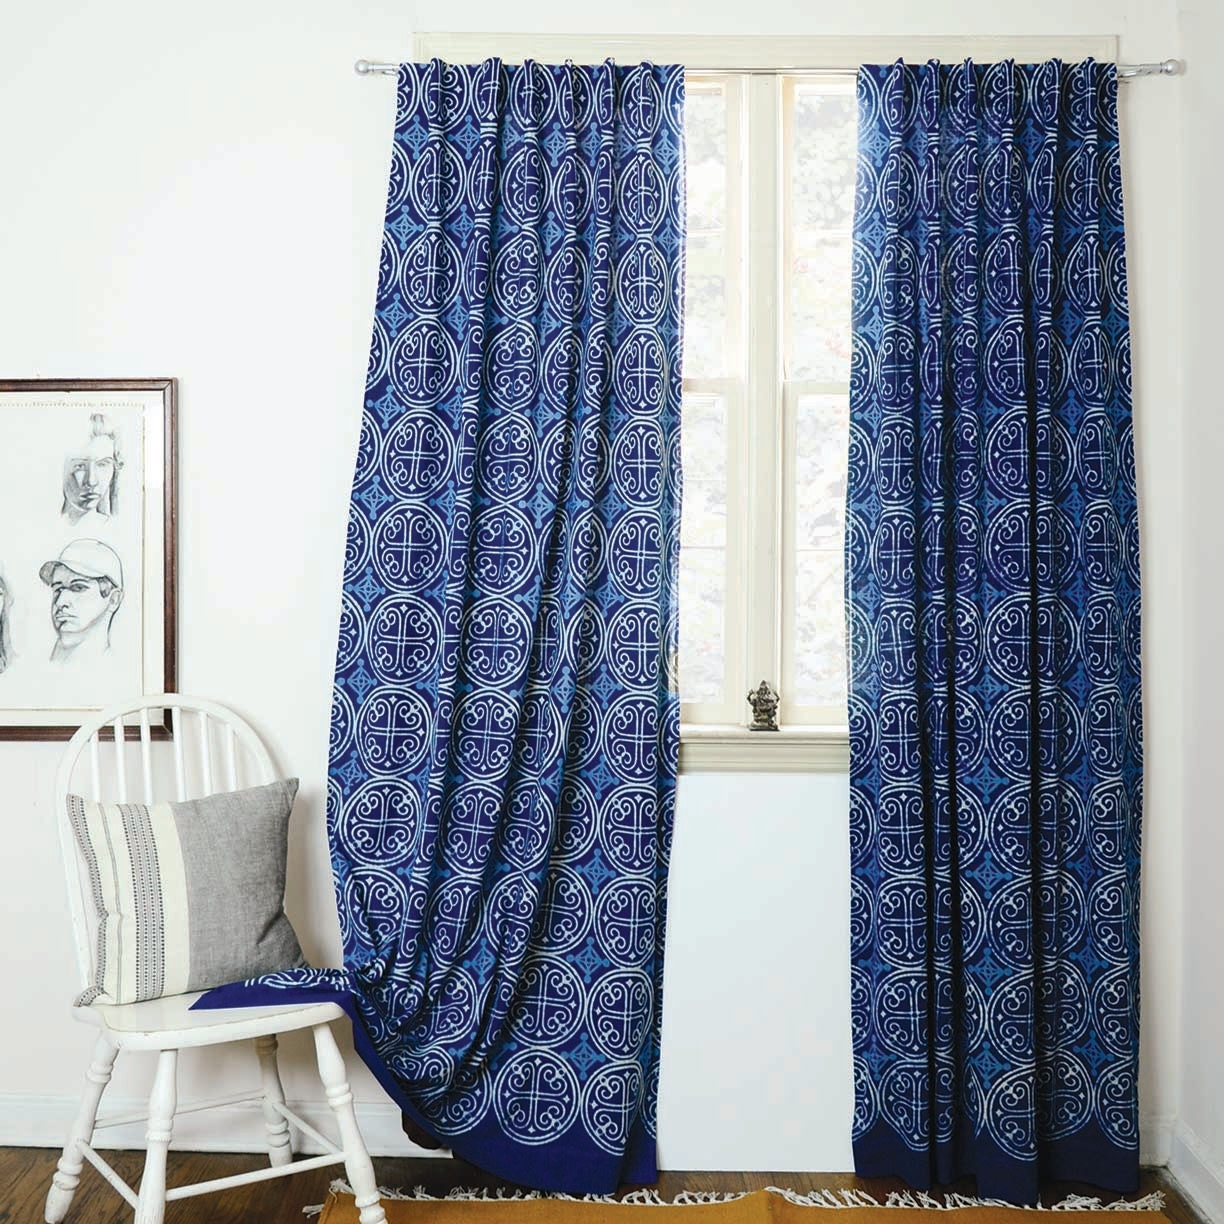 Green curtains for bedroom - Green Indian Curtains Indigo Curtains Blue Curtains Window Boho Bedroom Home Decor Housewares Block Print